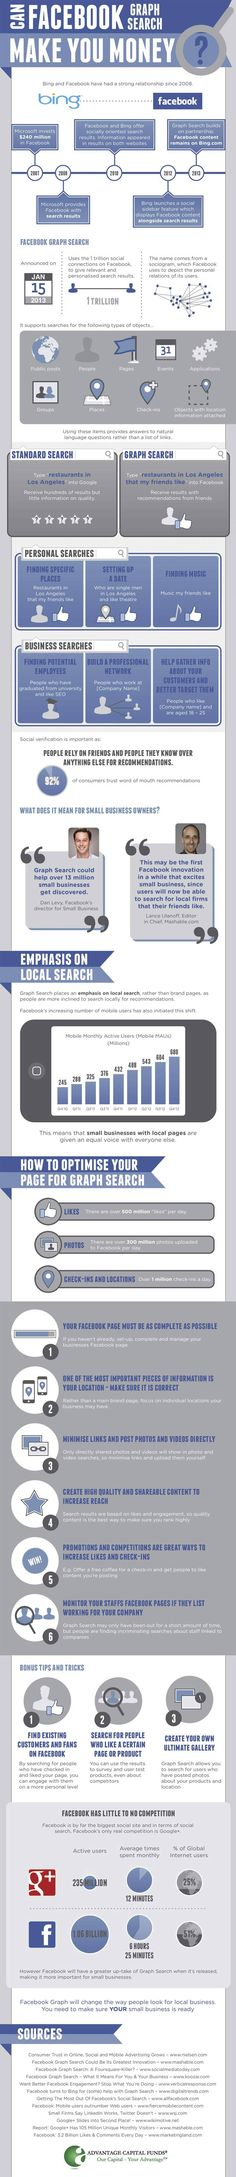 Can Facebook Graph Search make you Money? - infographic - http://hosting.ber-art.nl/can-facebook-graph-search-make-you-money-an-infographic /@Ber|Art Visual Design V.O.F. - #SEO